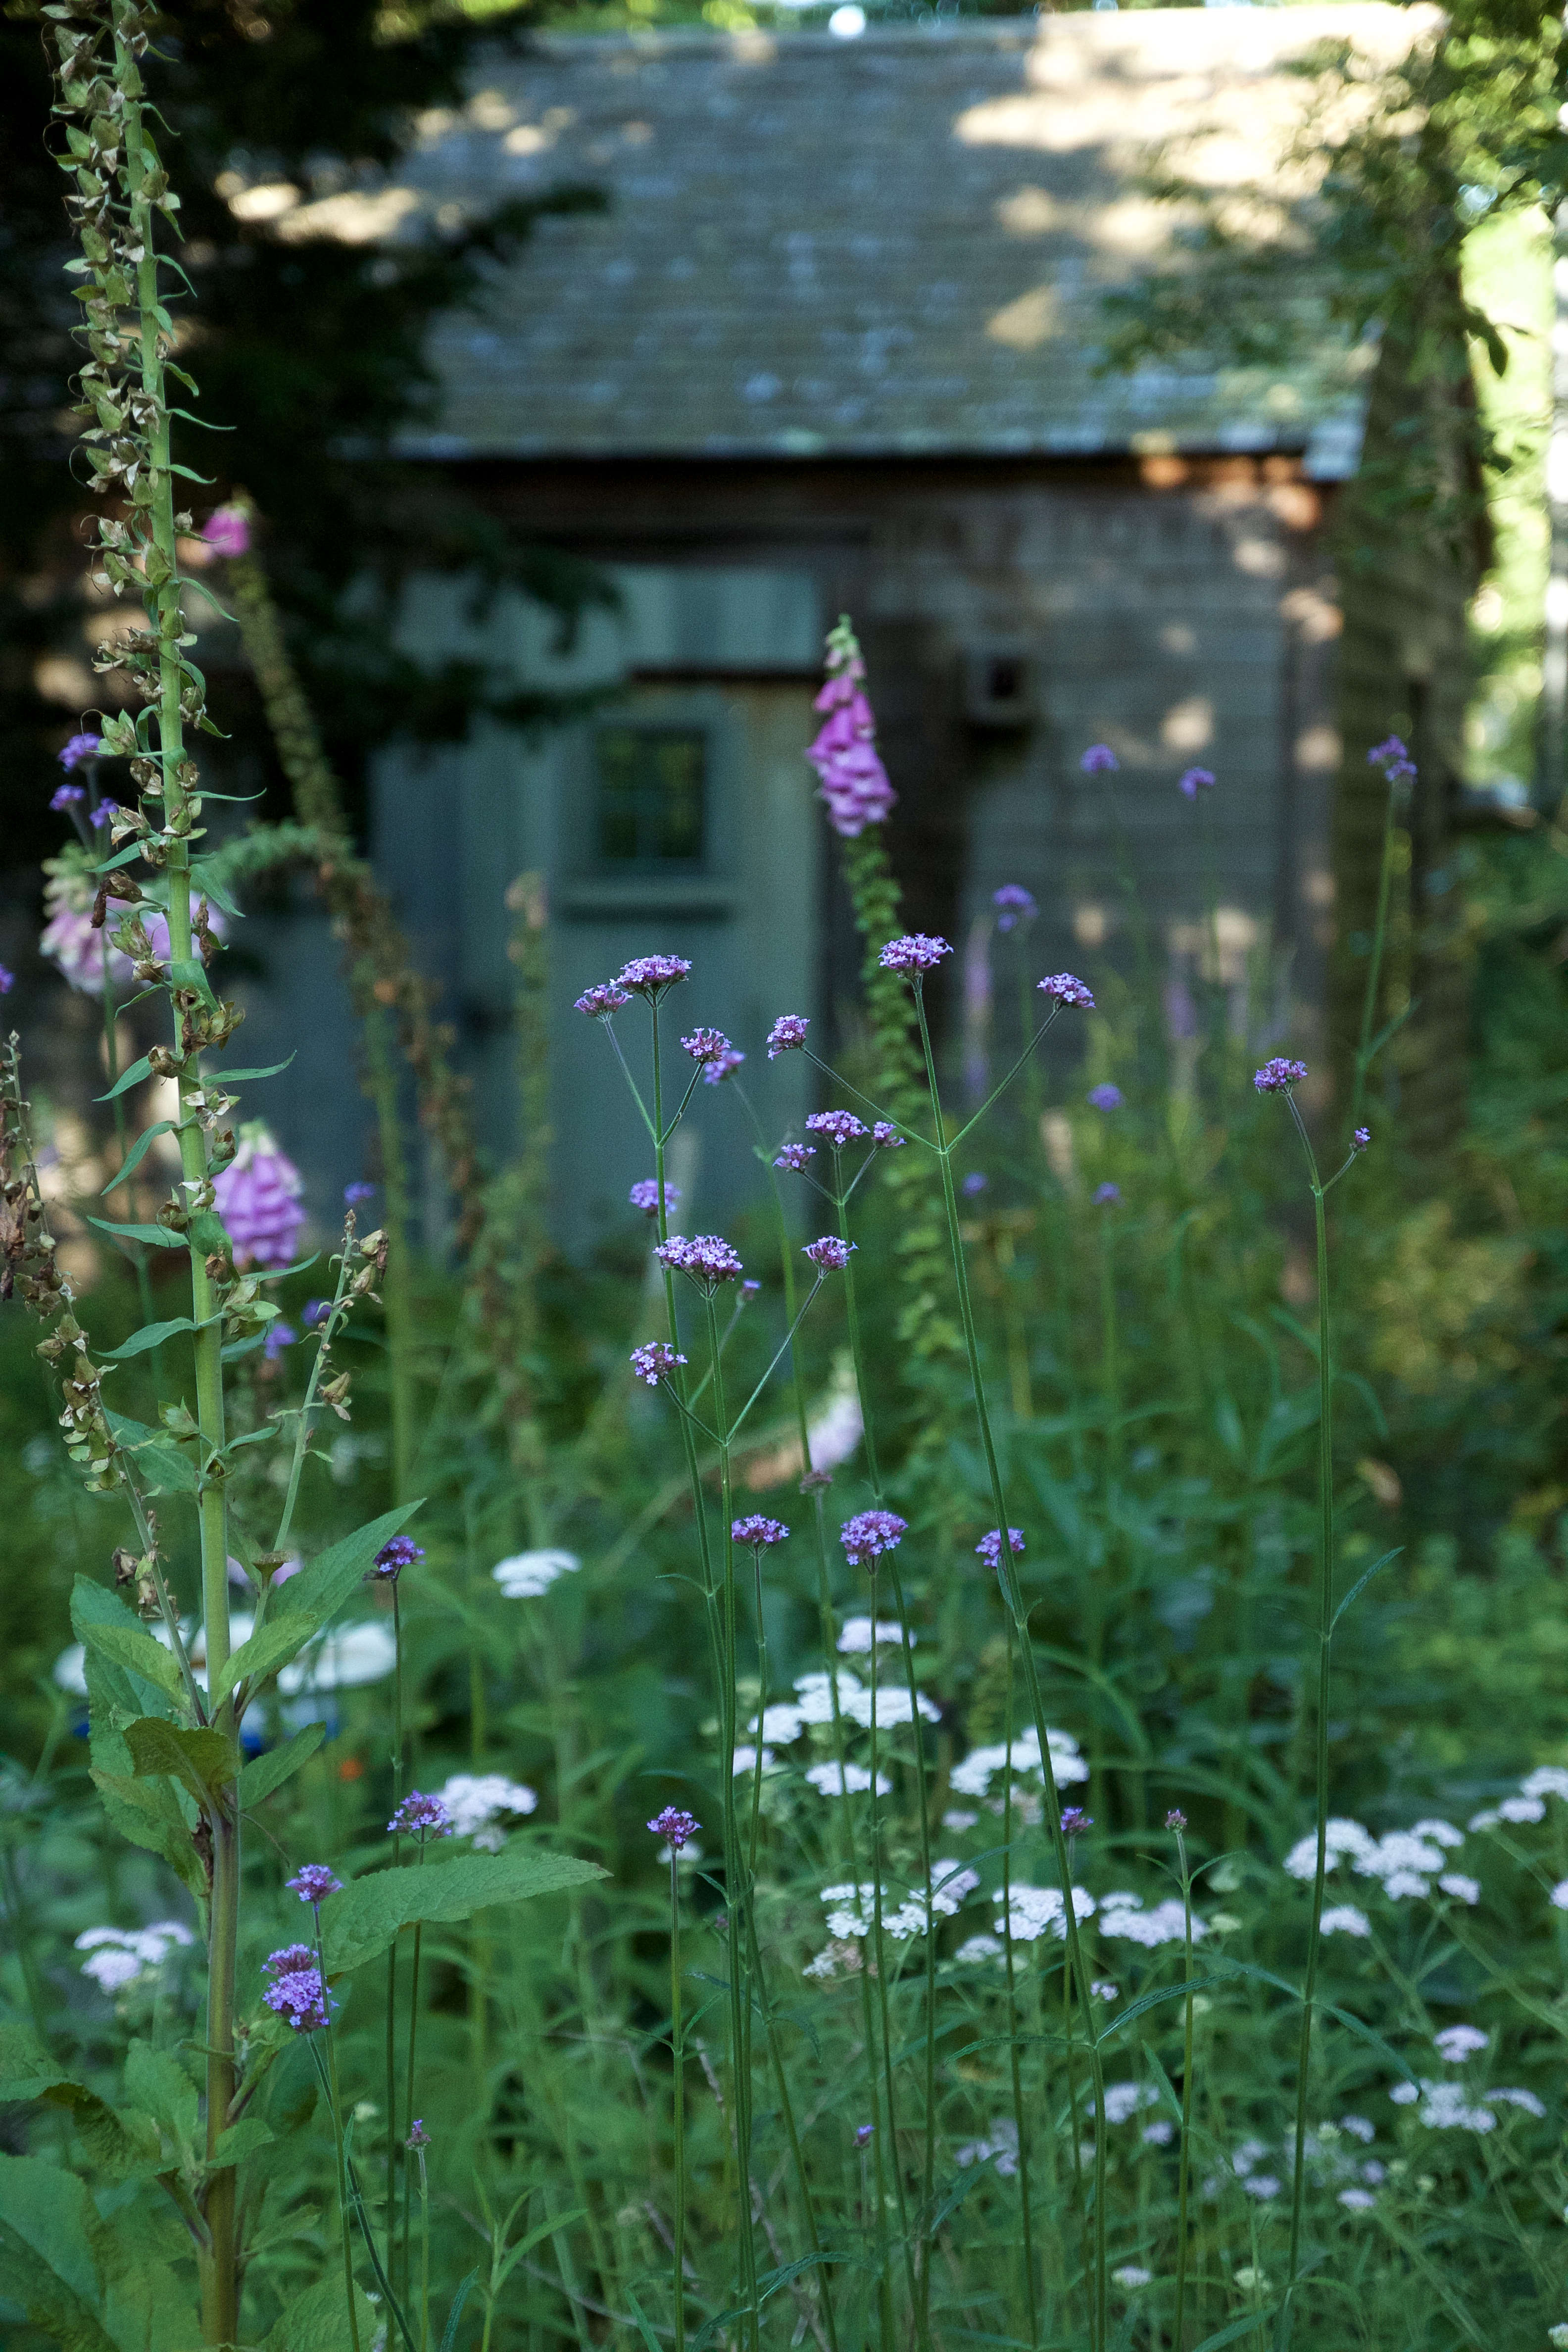 The pert faces of verbena and native yarrow bloom in front of the garden shed in July.